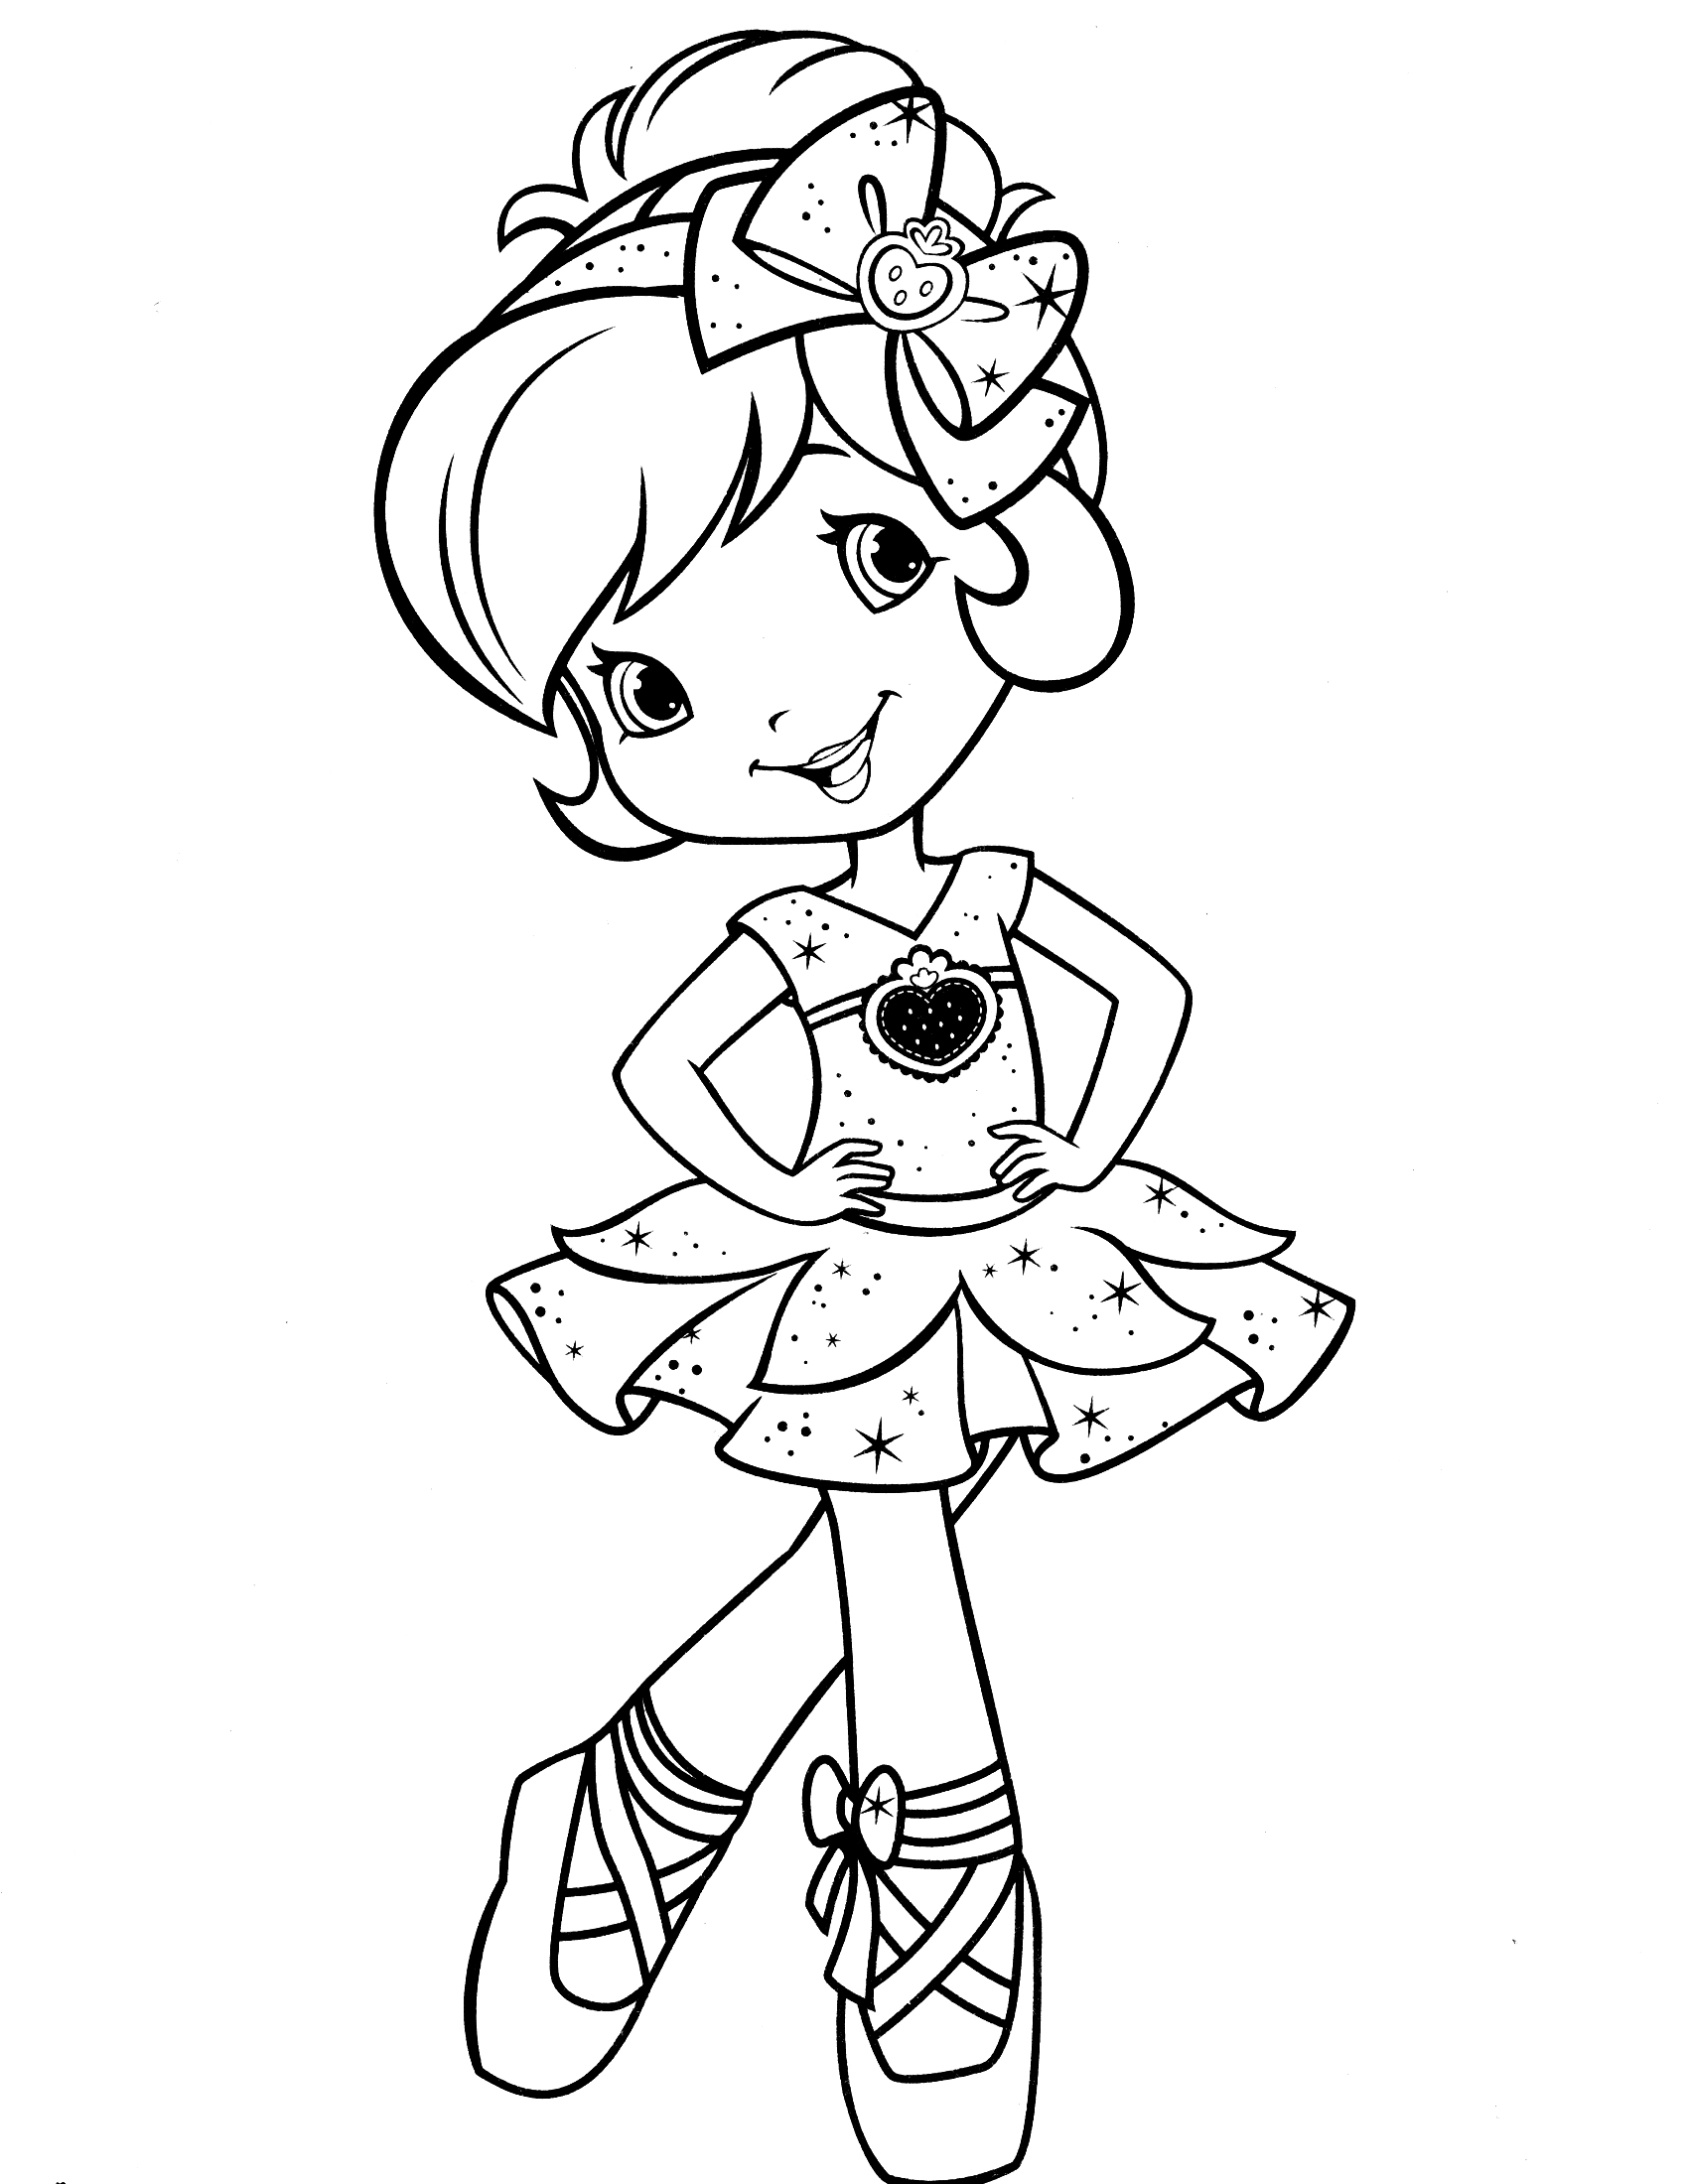 1700x2200 Strawberry Shortcake And Friends Coloring Pages Allmadecine